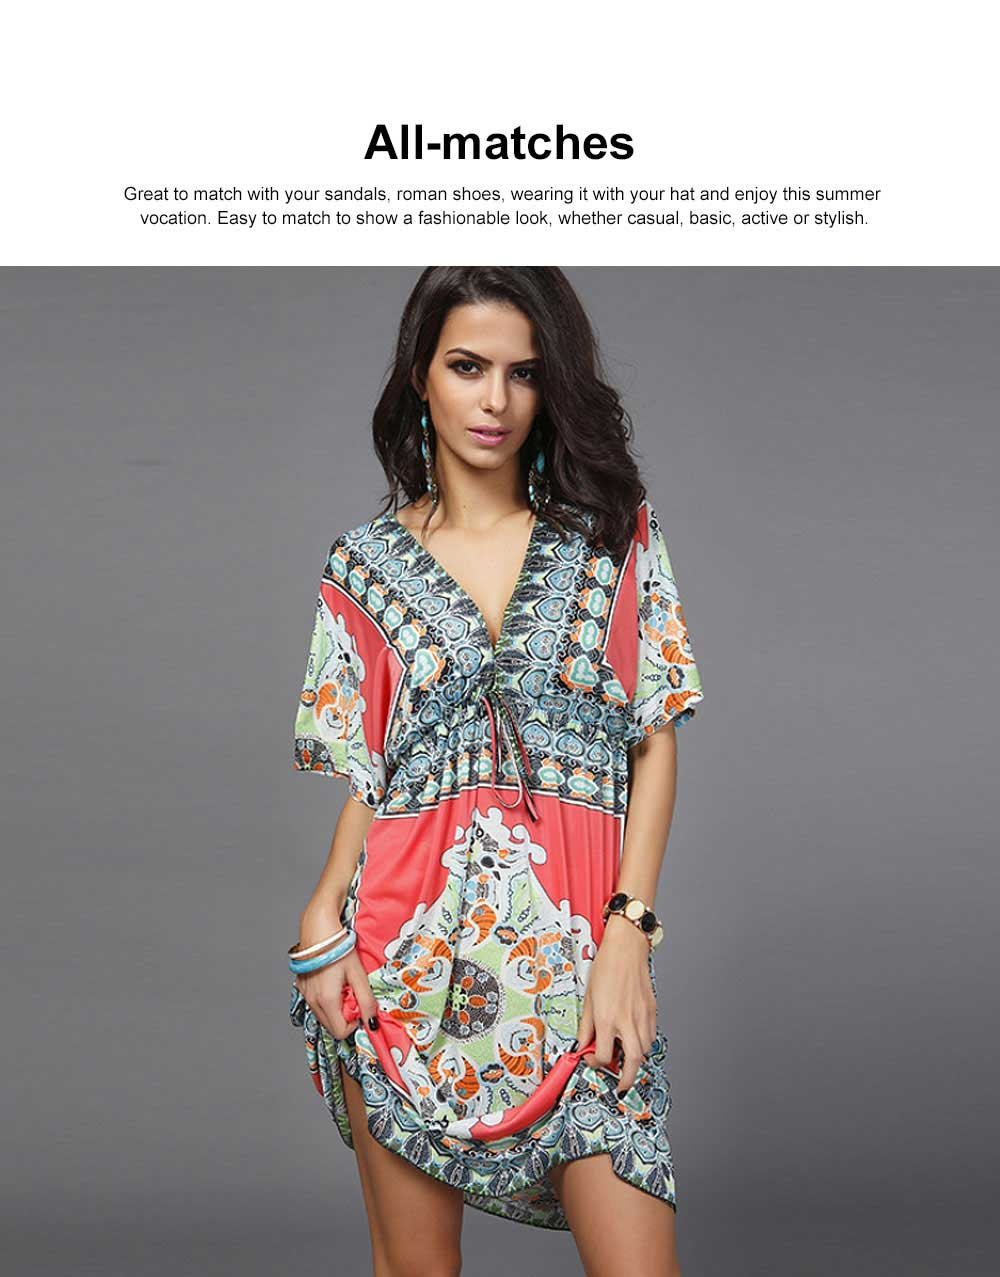 Women's Sexy Dress, Summer V-neck Bohemian Floral Printed Mini Dress, Knee High Dress with Belt for Gifts 3